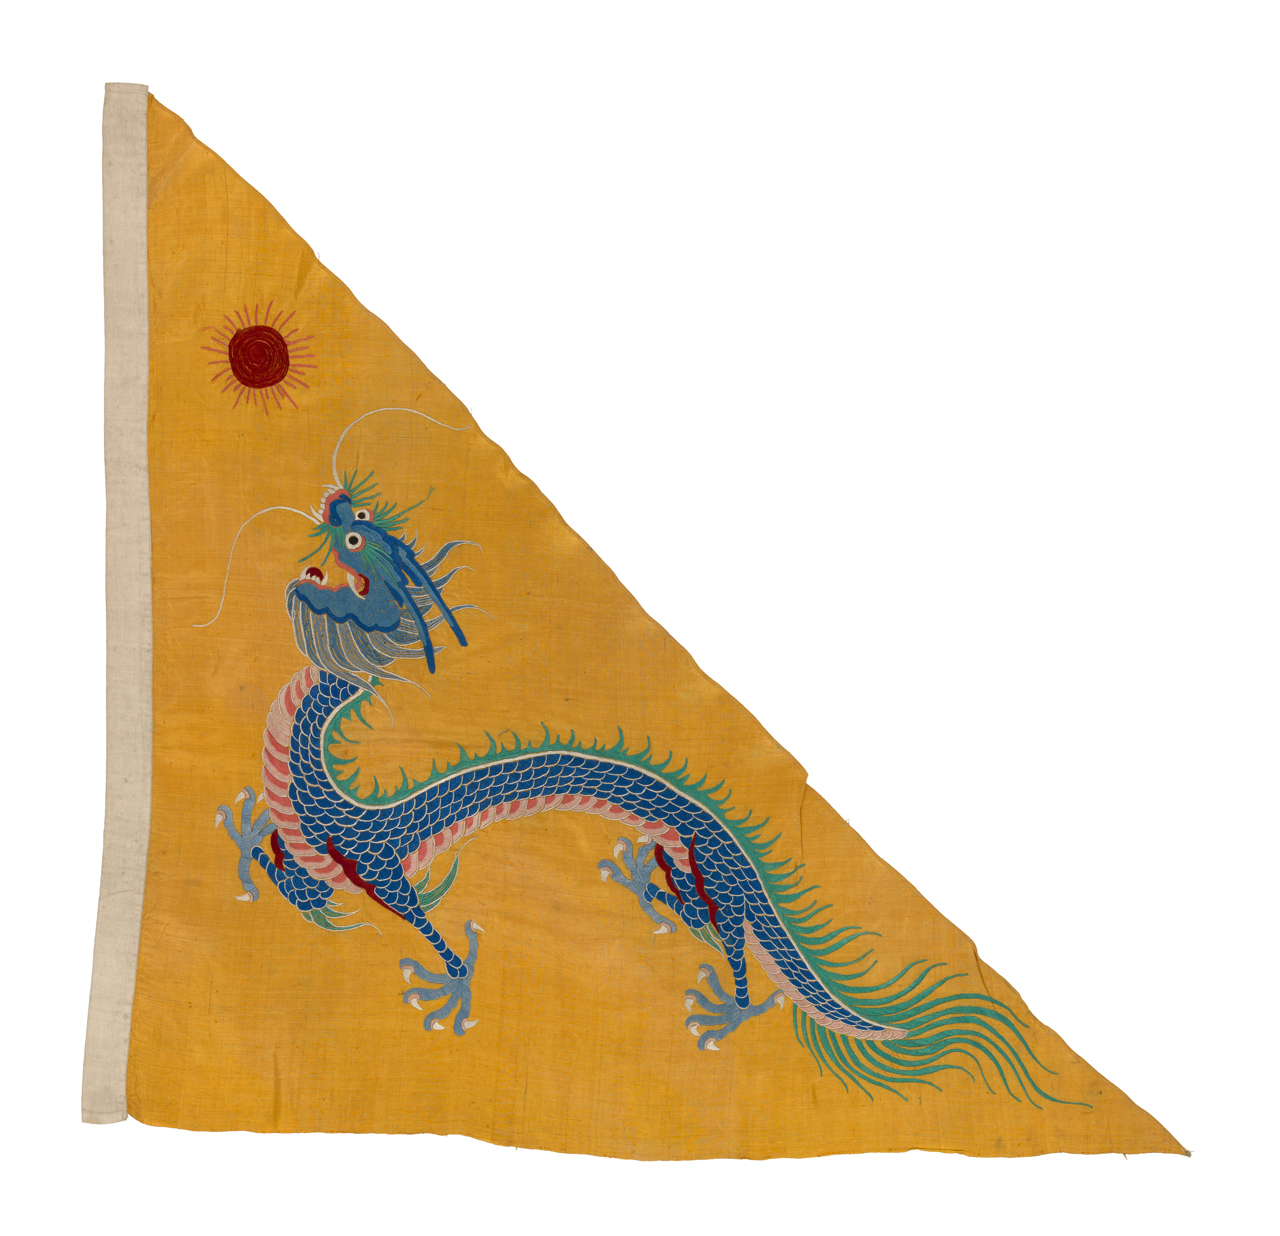 Image of the Chinese Imperial Naval Ensign Flag.